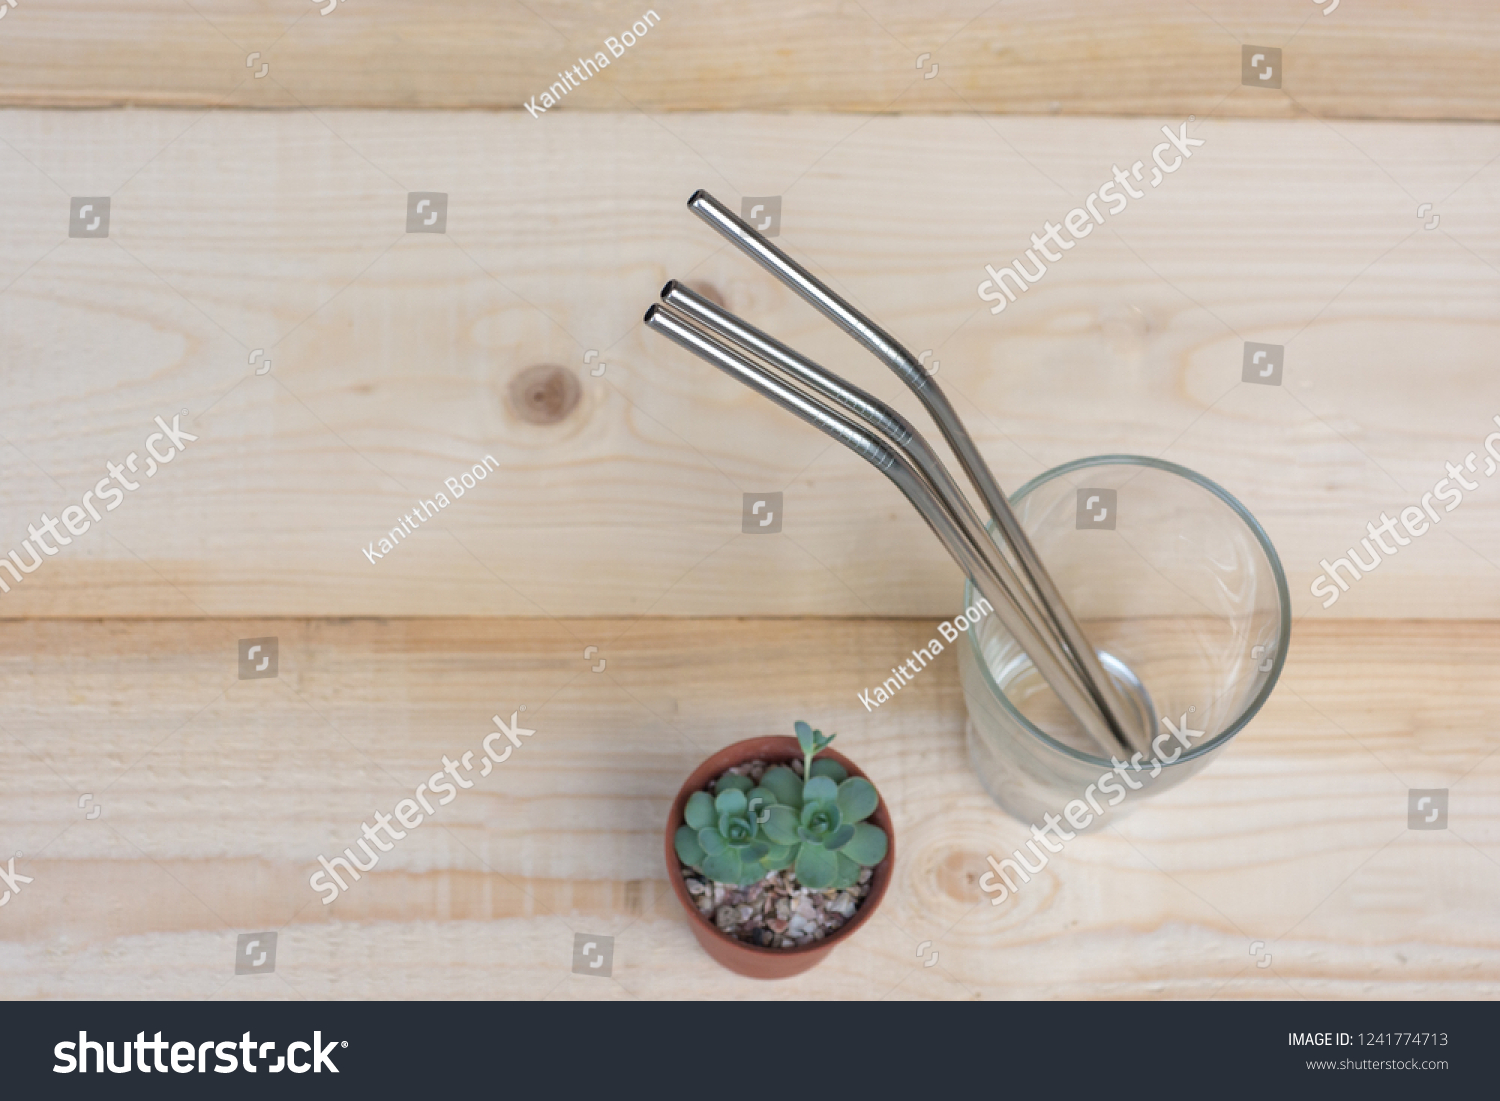 Reusable straws made of stainless steel in a glass on wooden table decorated with potted